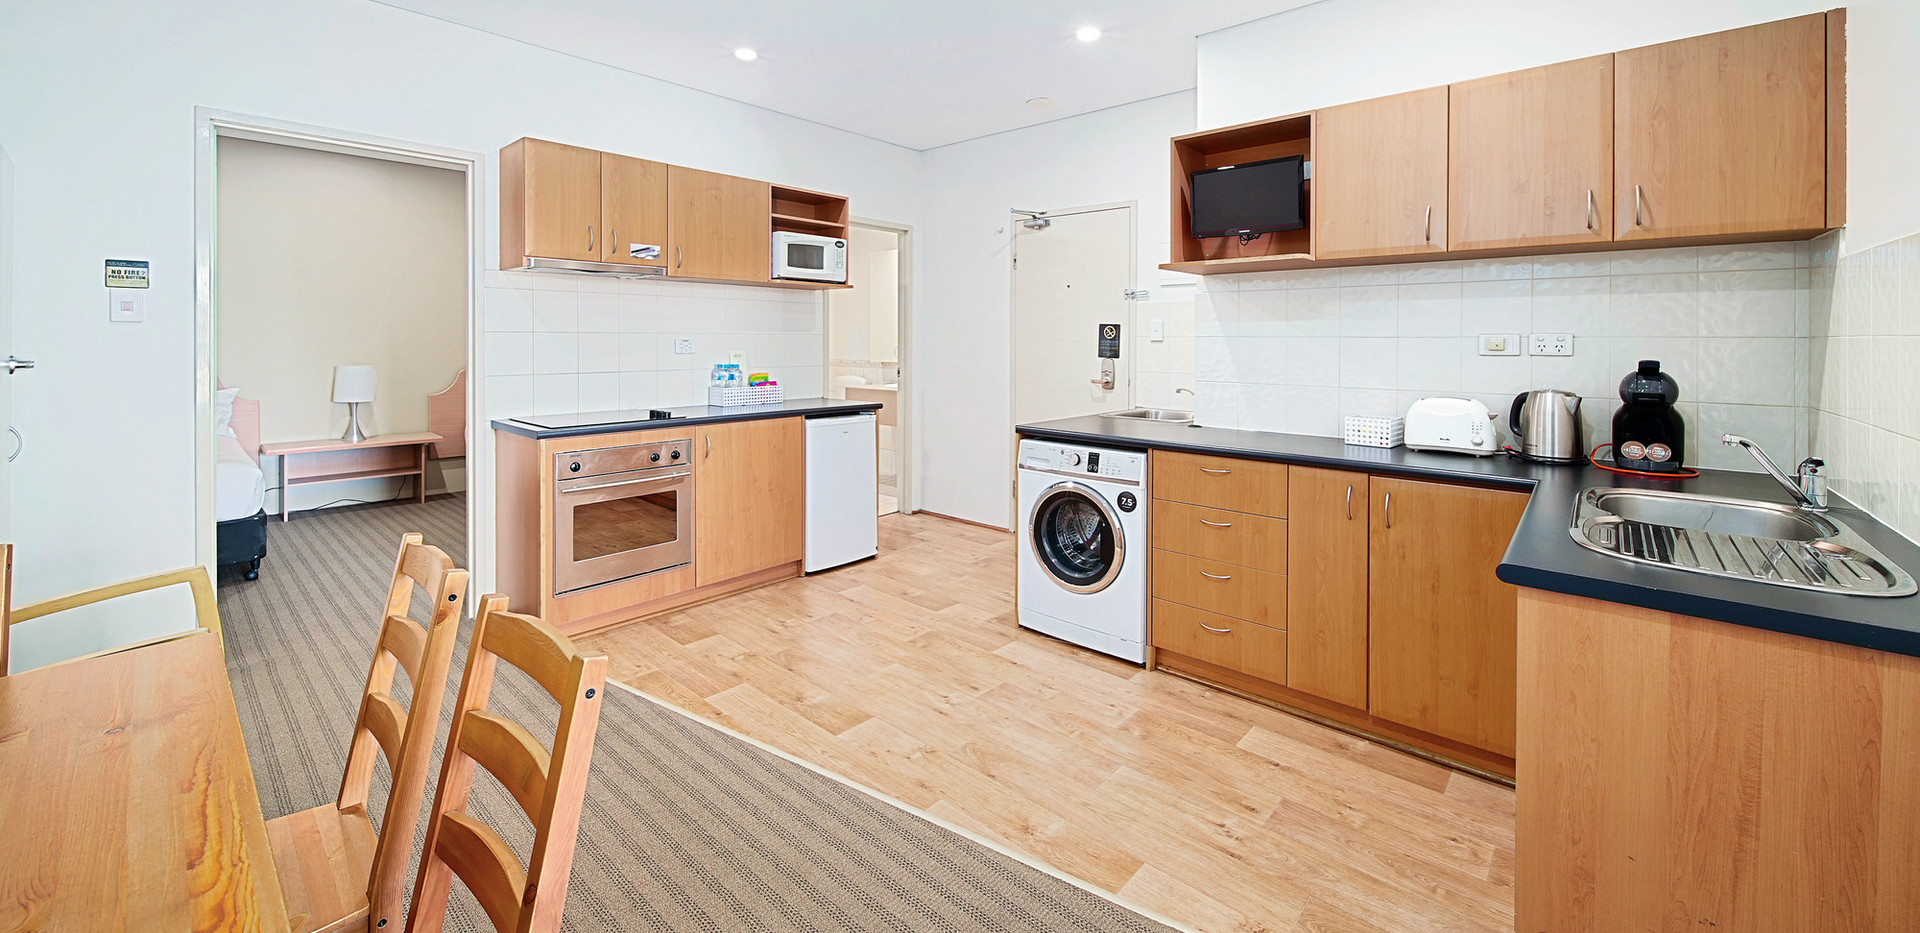 18. Kitchen Lounge - Two Bedroom - All S